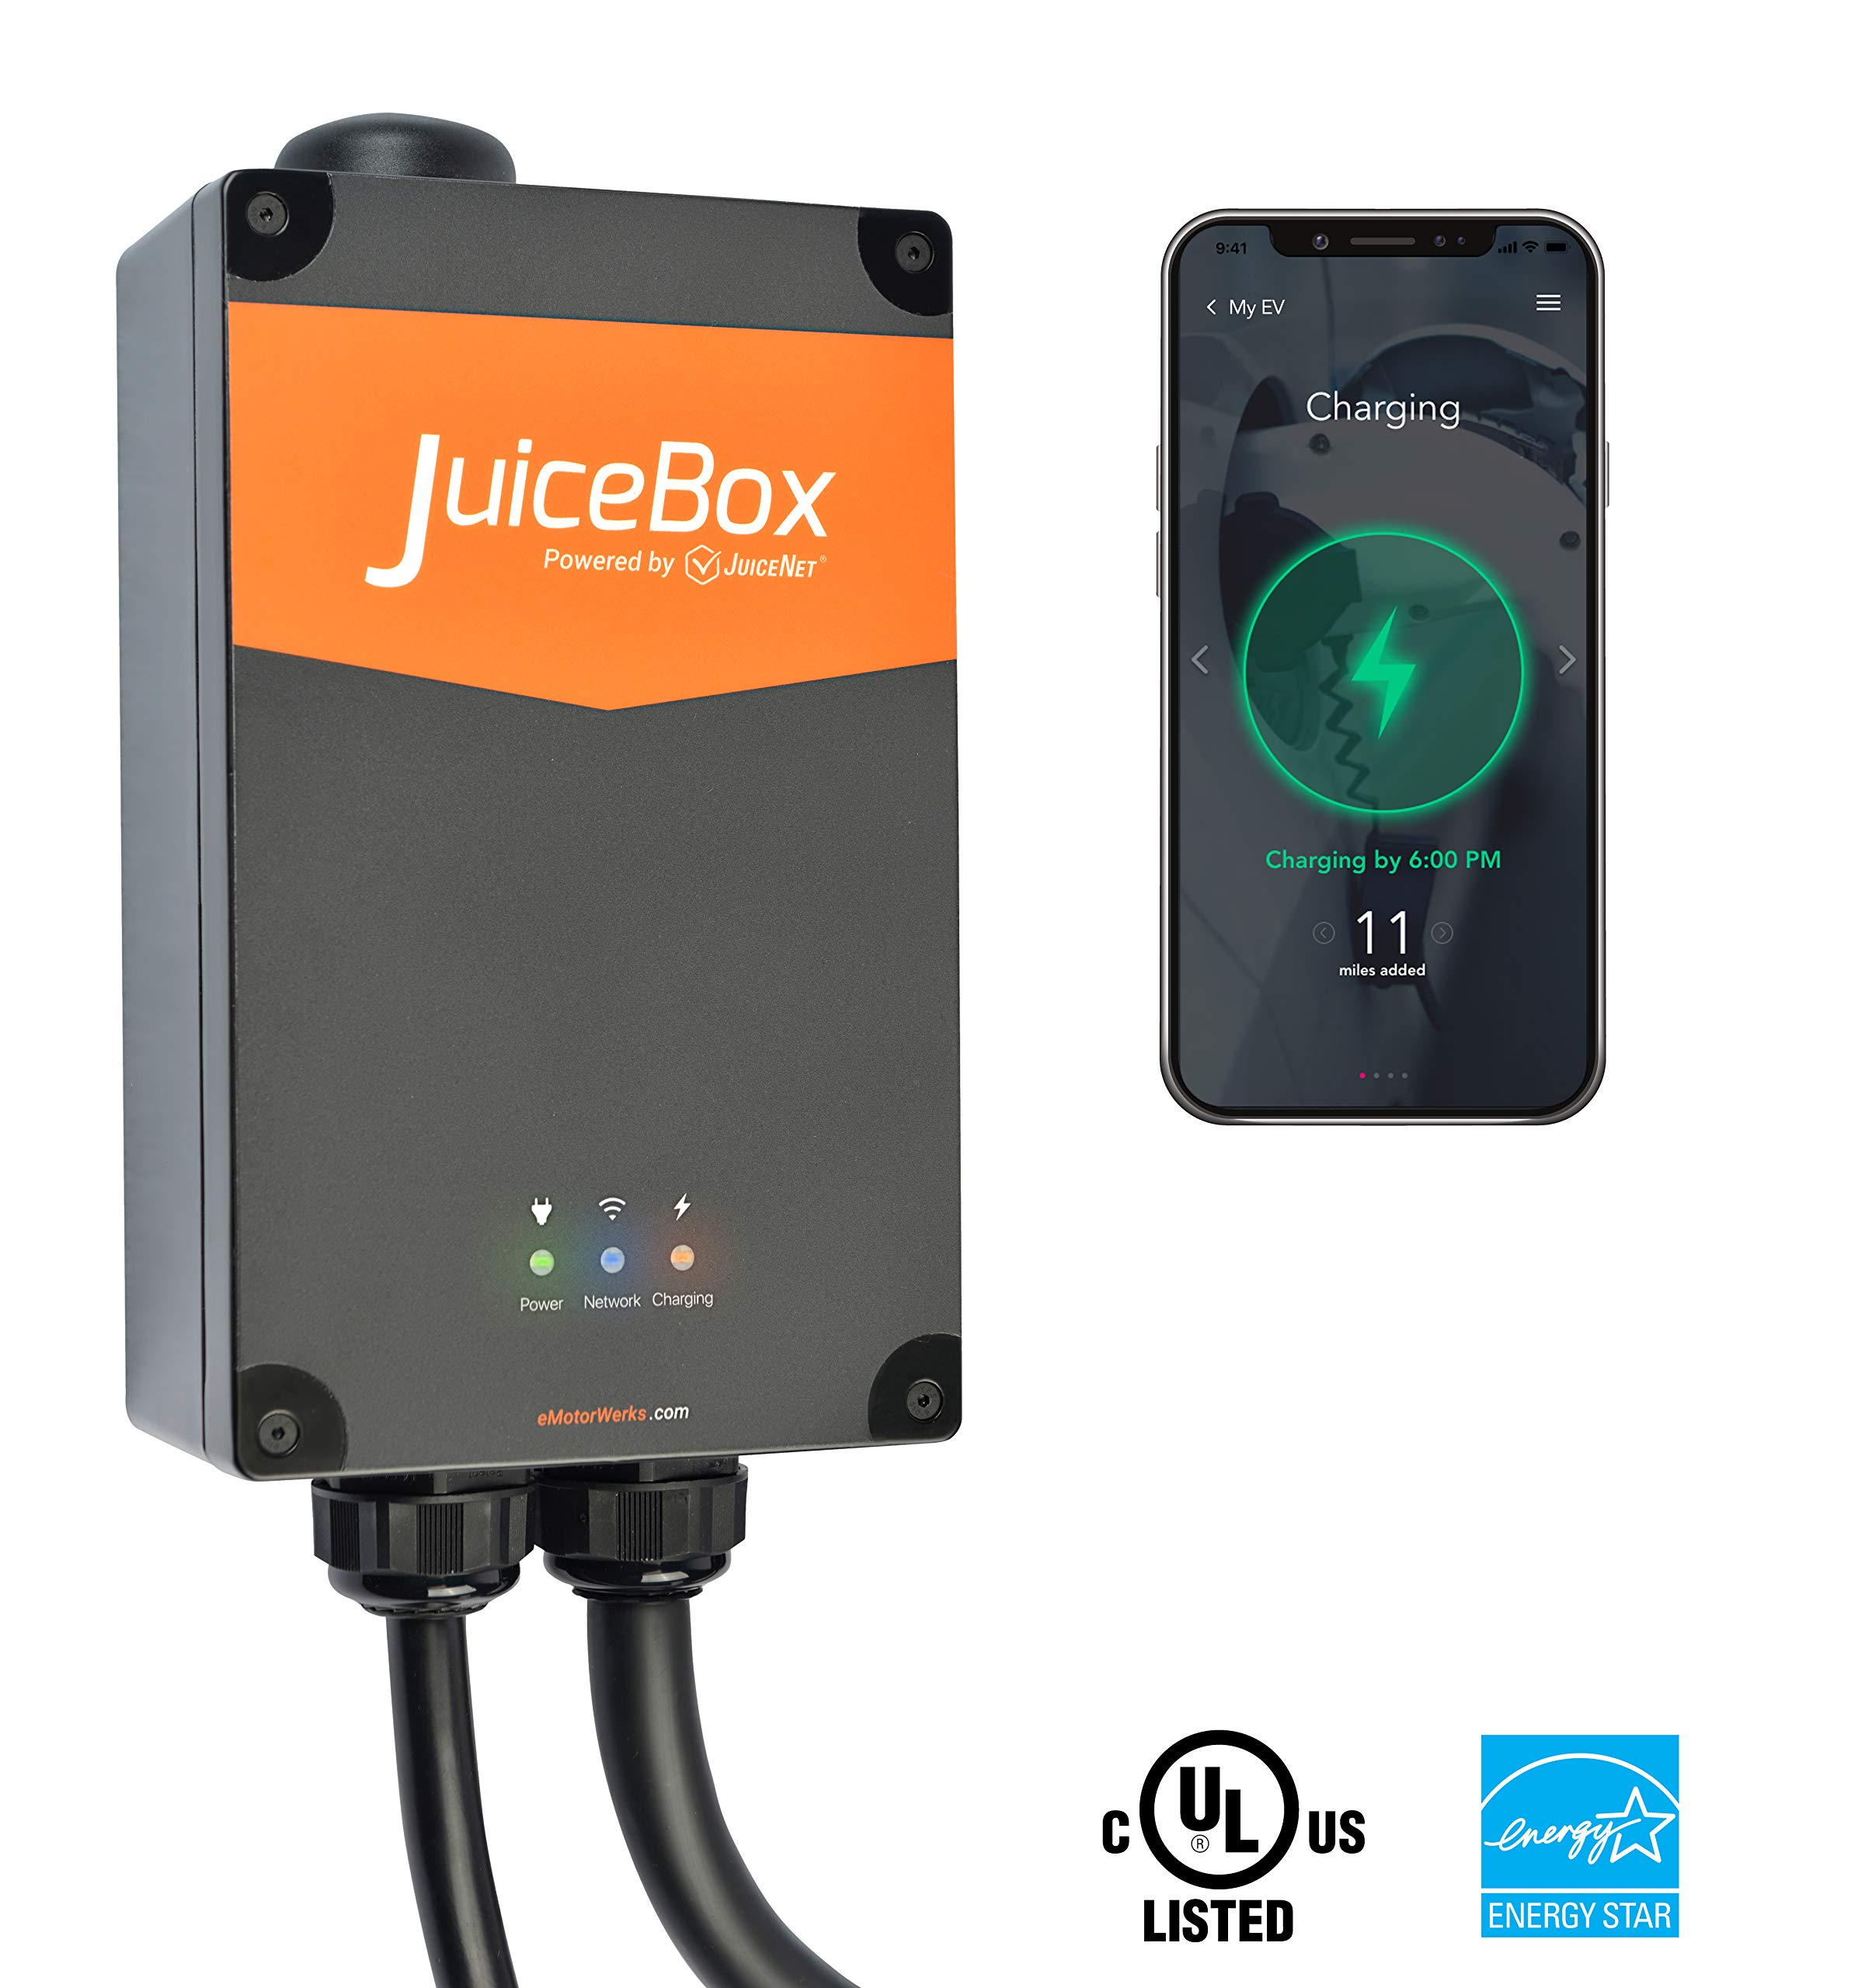 JuiceBox Electric Vehicle Charging Station